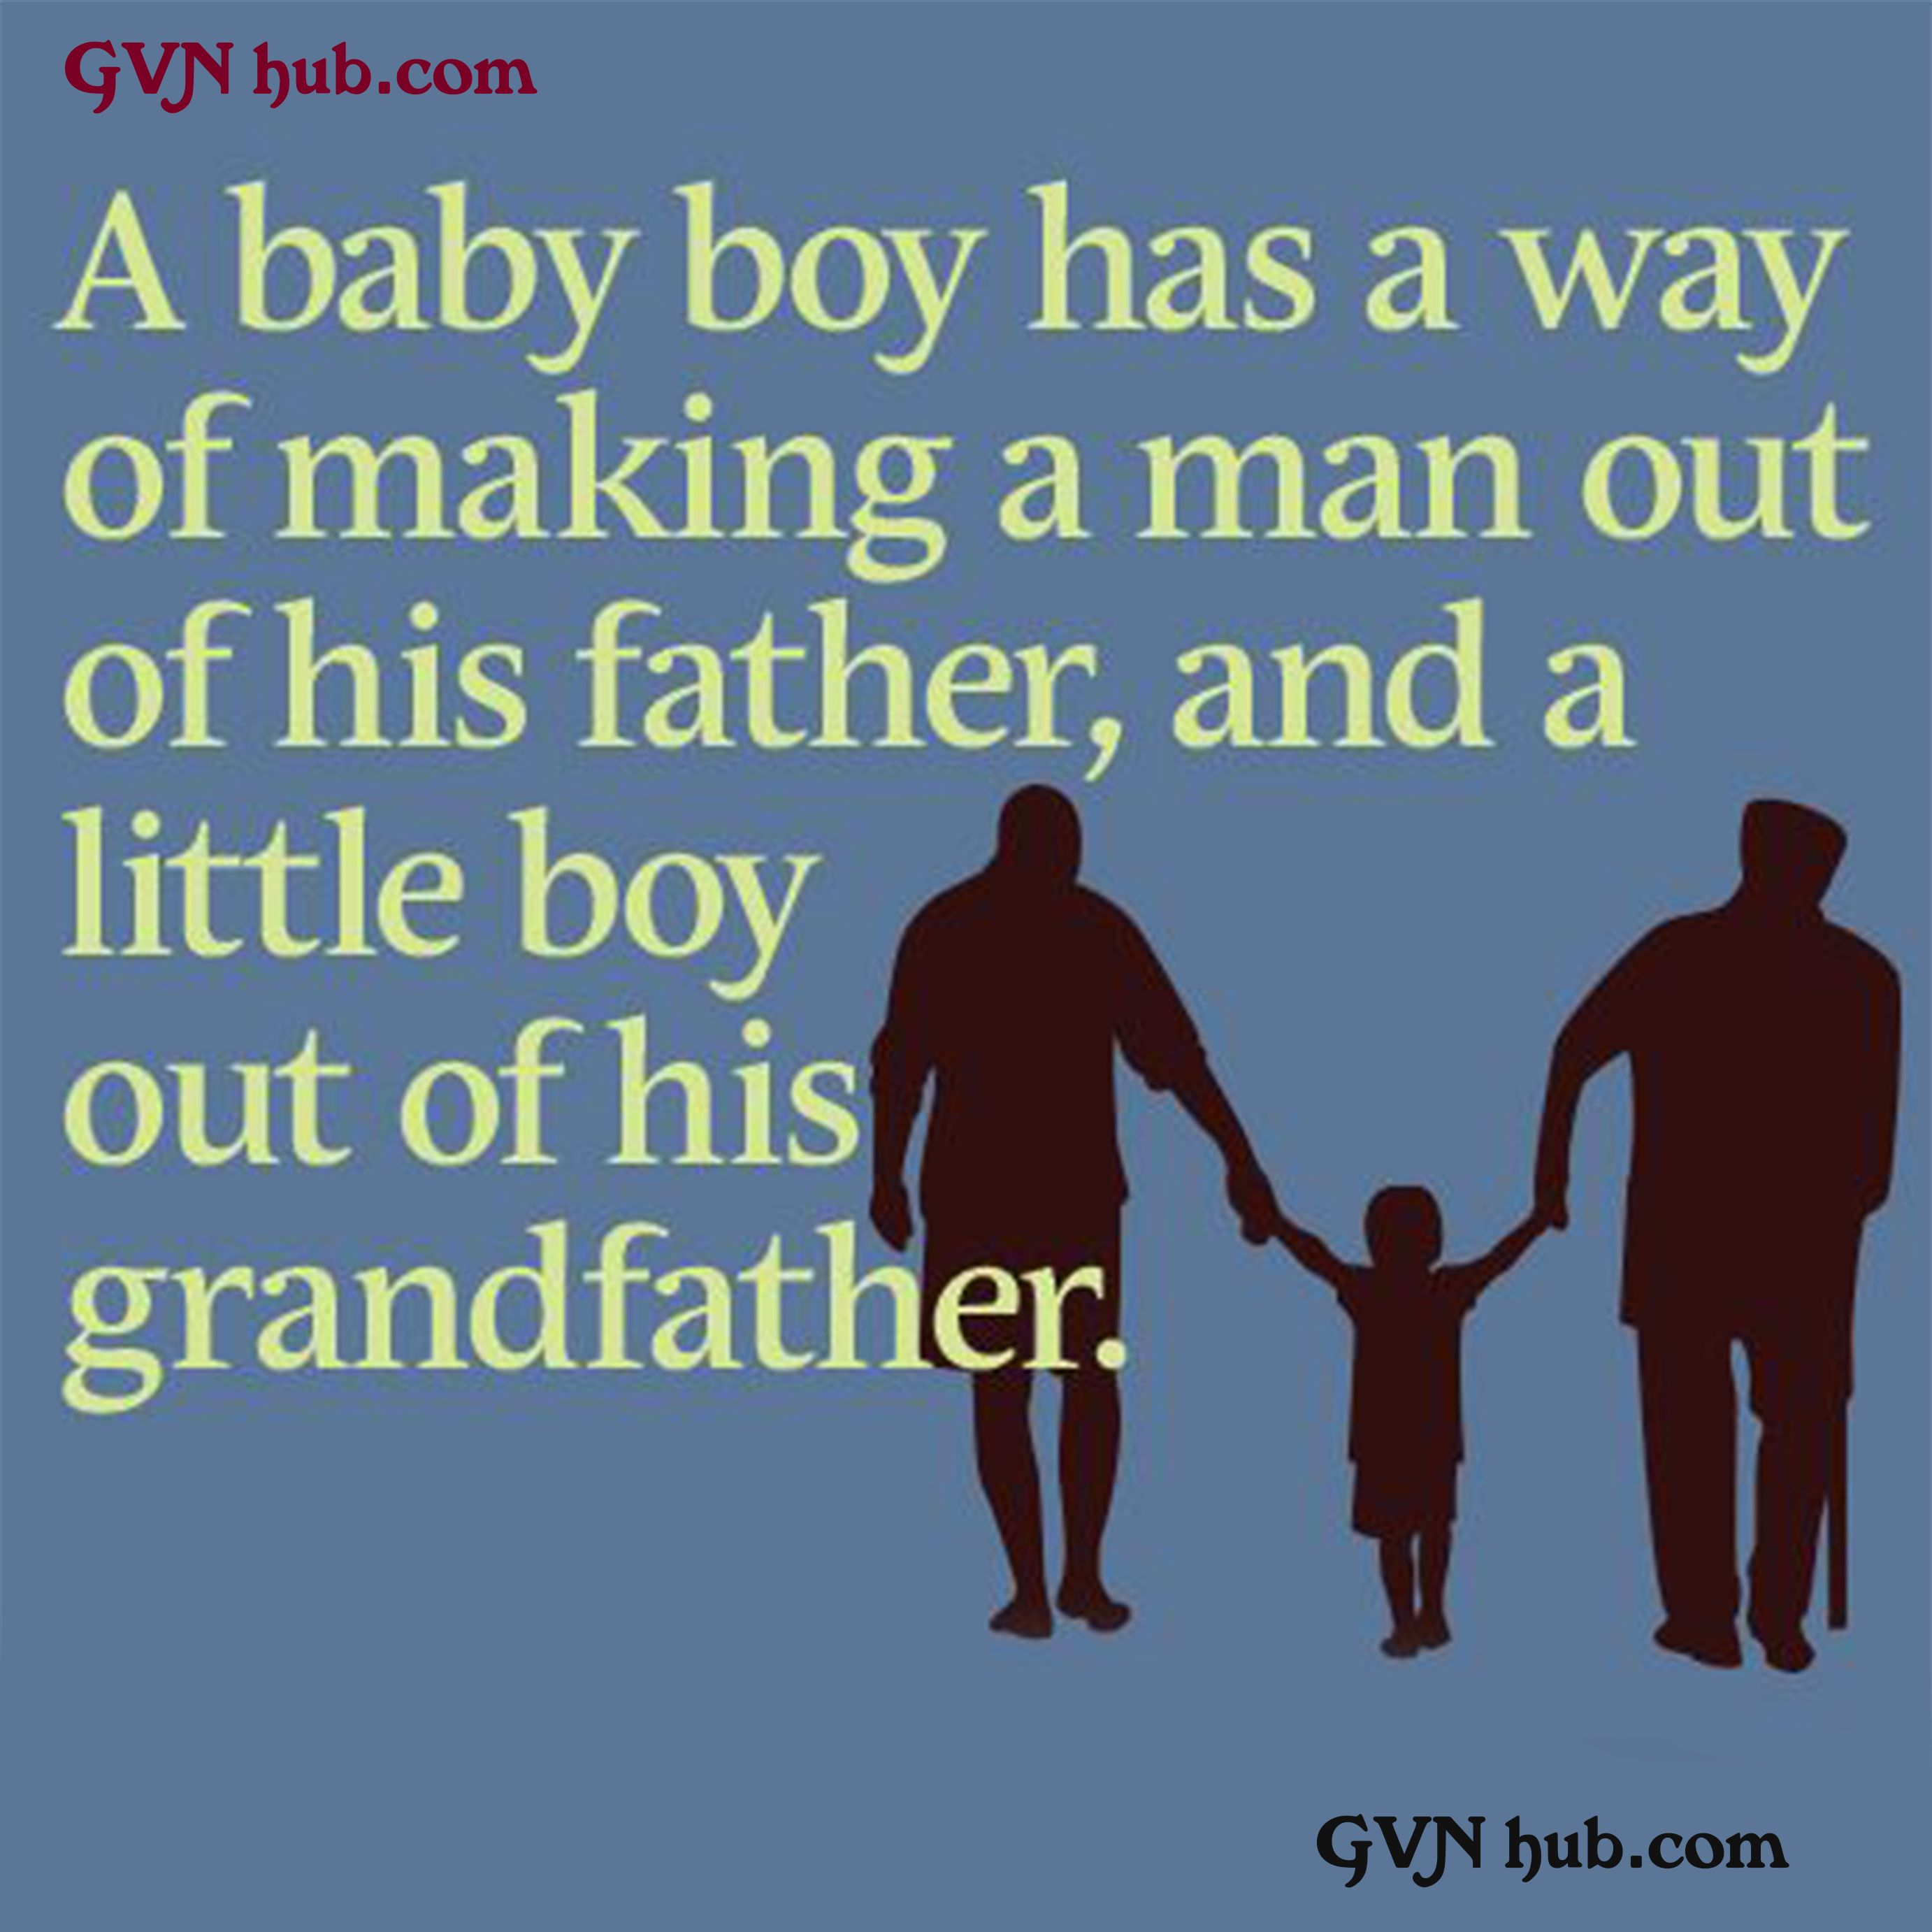 25 Best Mom and Dad quotes | Memories ... - GVN Hub